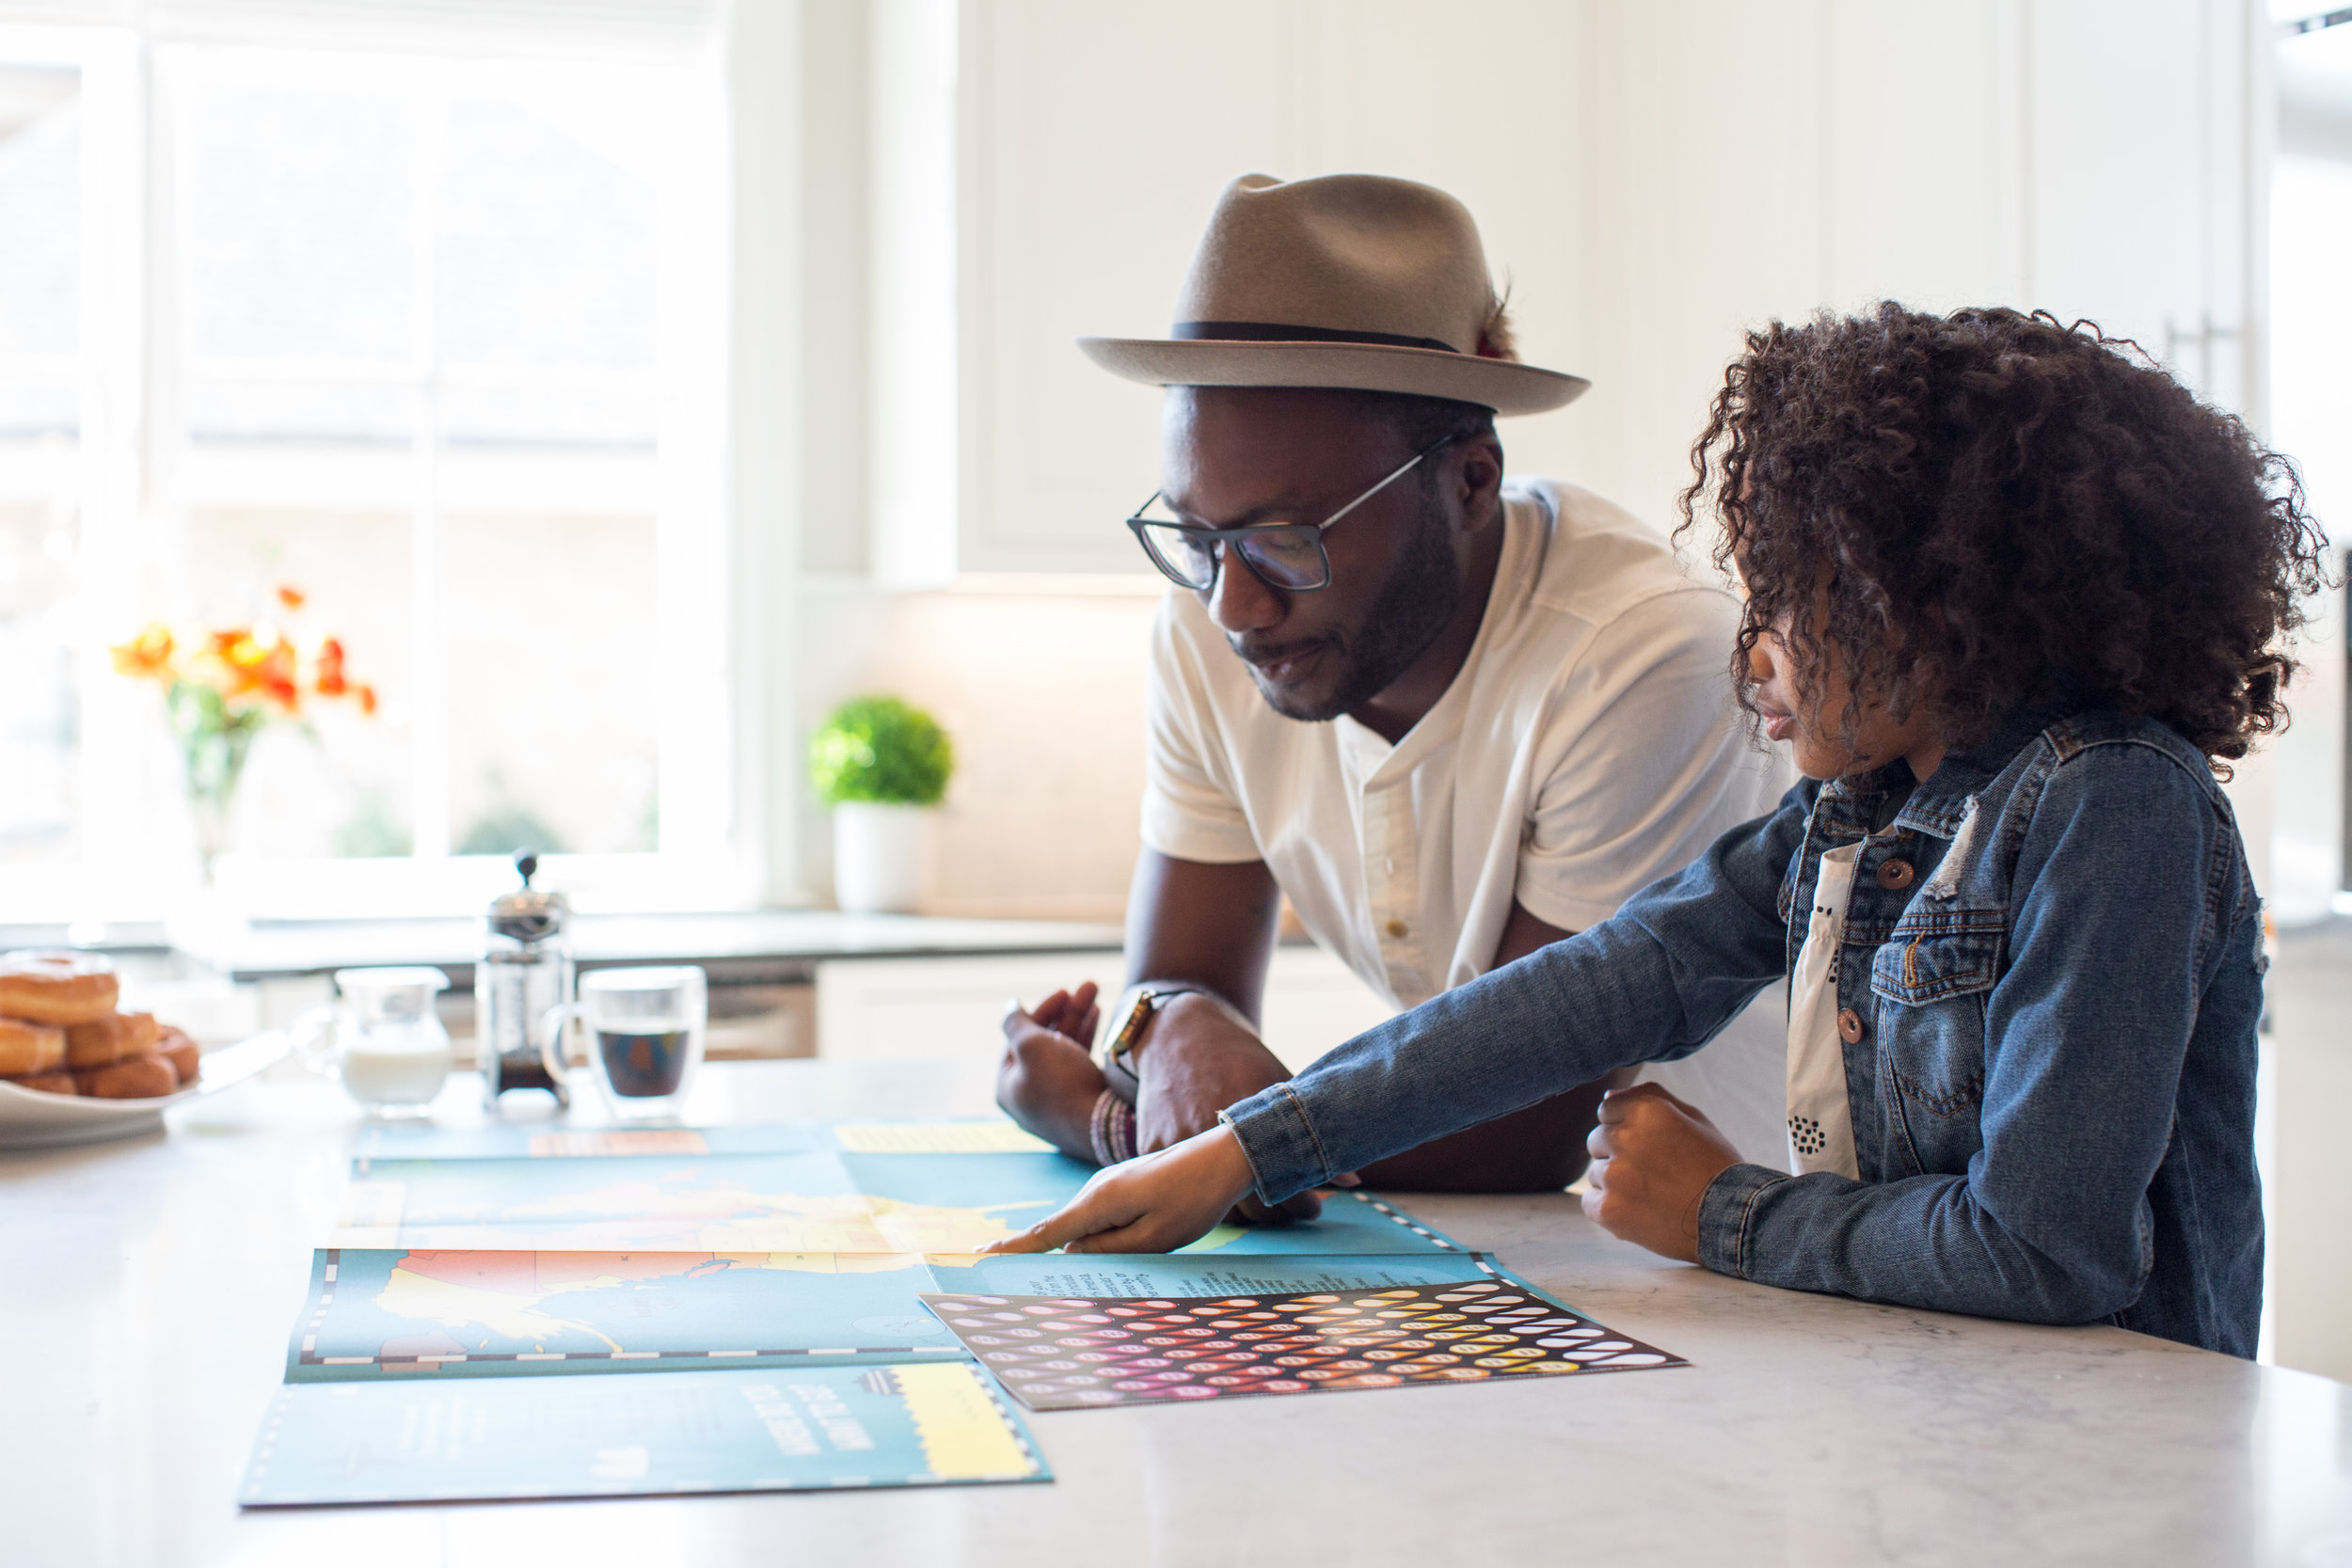 Parent Coaching - Parent Training can help you gain clarity, communicate more effectively, strengthen connections with your children, and much more.